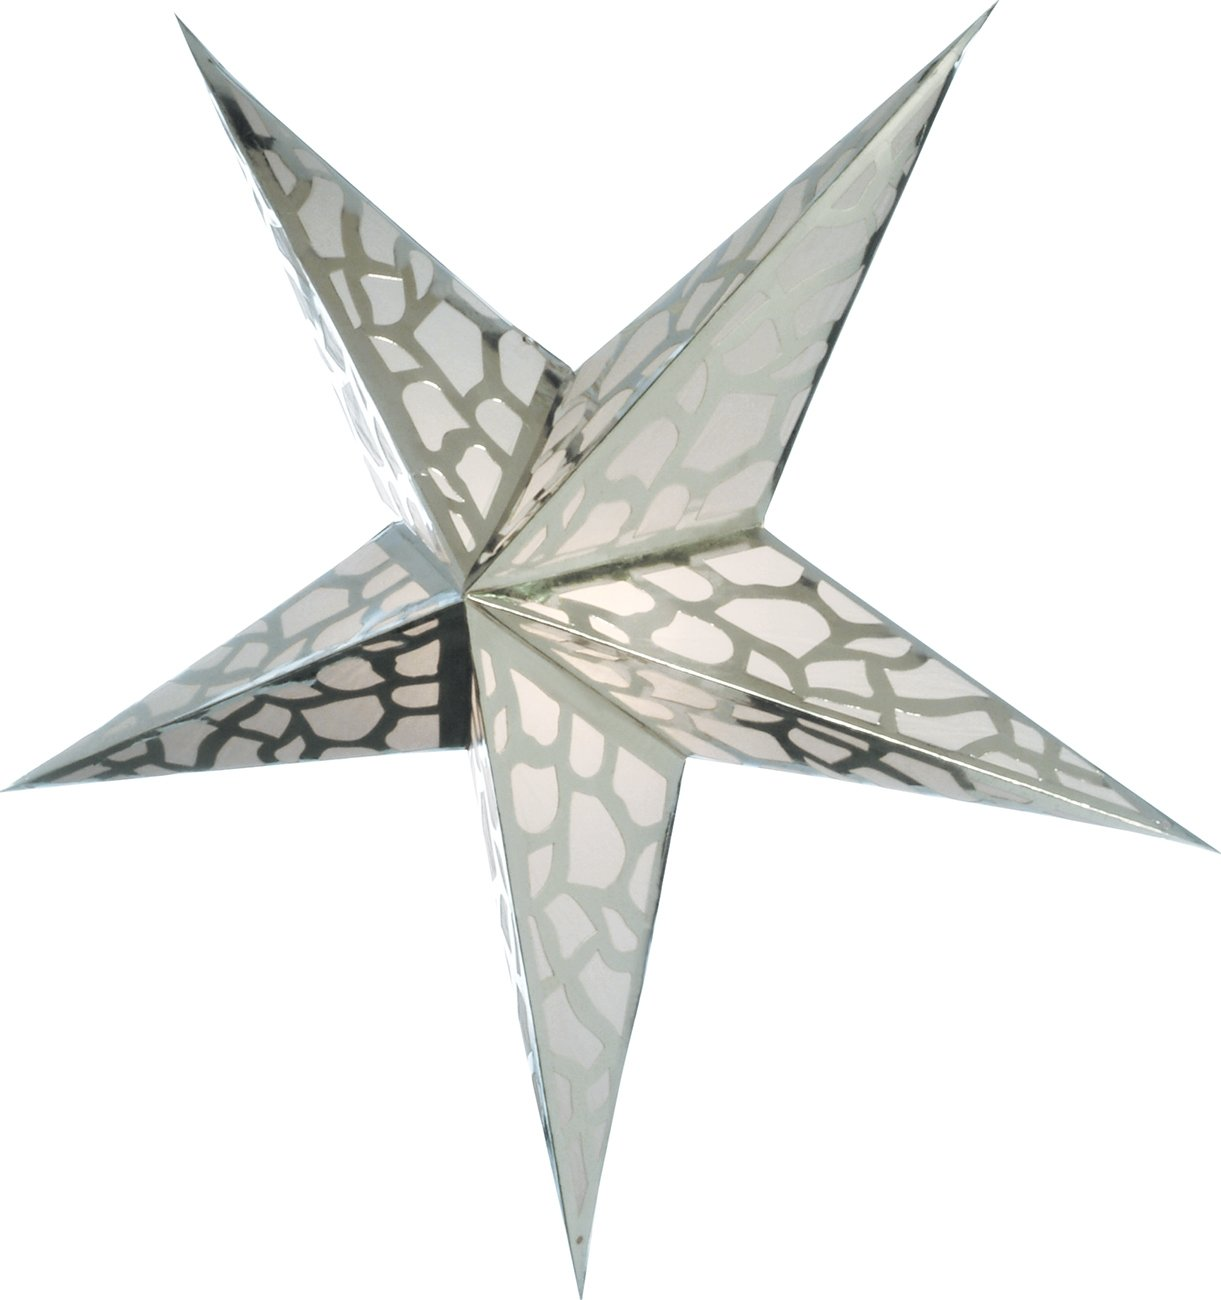 Luna Bazaar Paper Star Lantern (24-Inch, Platinum Silver) - For Home Decor, Parties, and Holiday Decorations